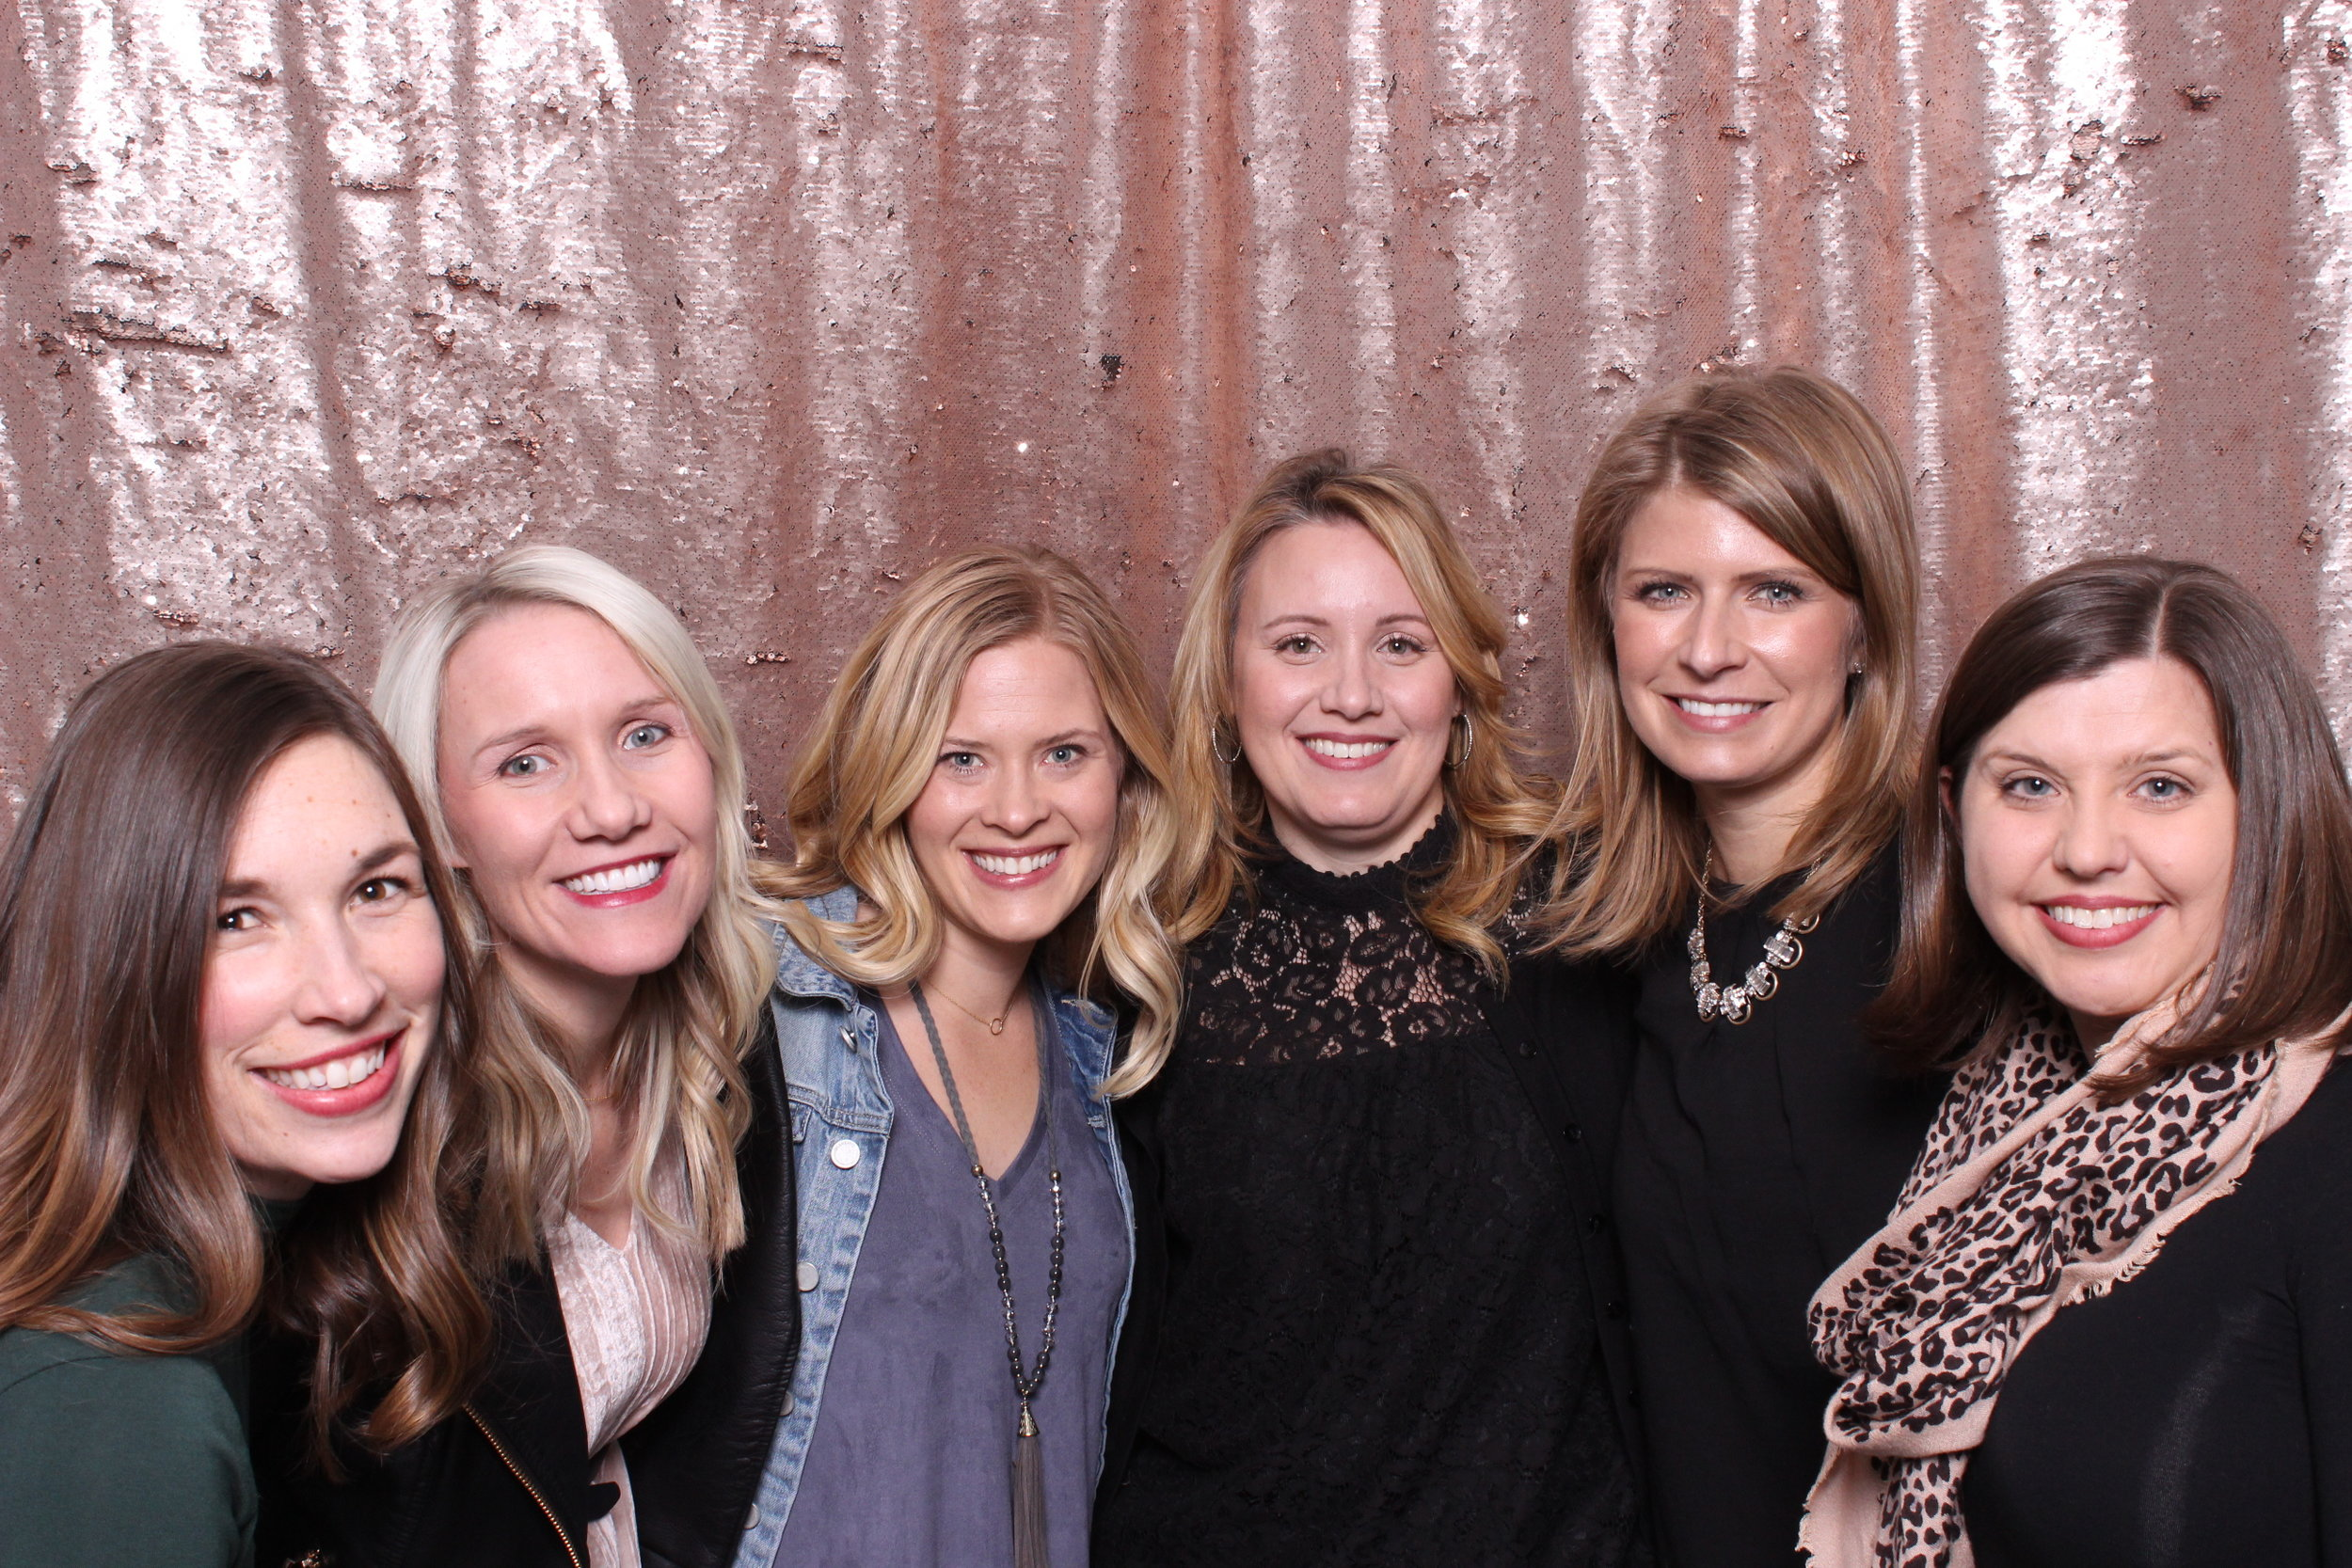 Hutton_House_Photo_Booth_rentals (8).jpg